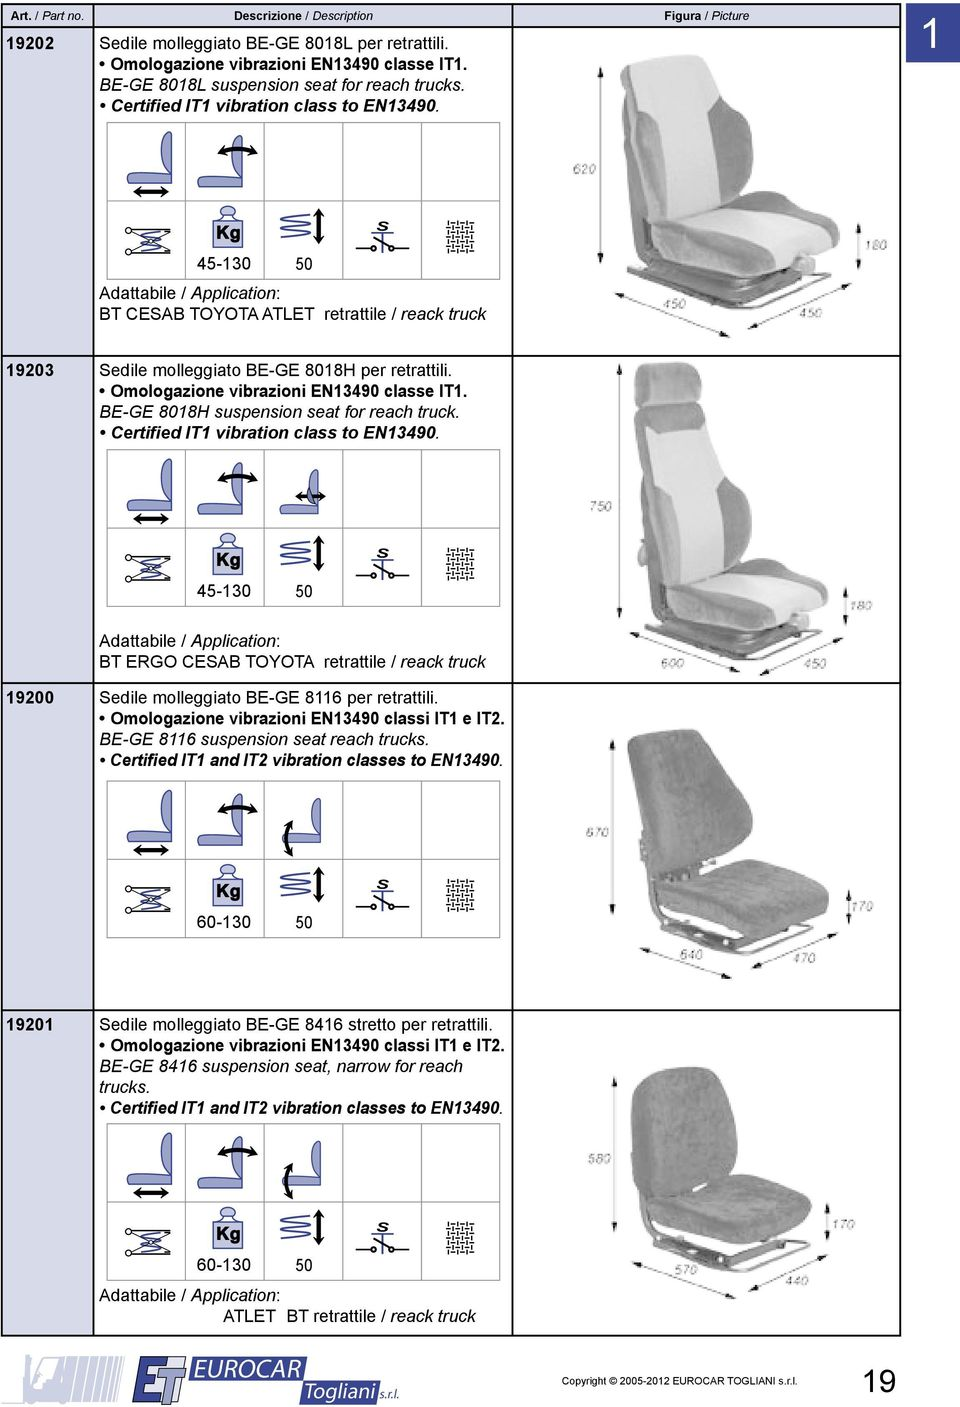 BE-GE 8018H suspension seat for reach truck. Certified IT1 vibration class to EN13490.